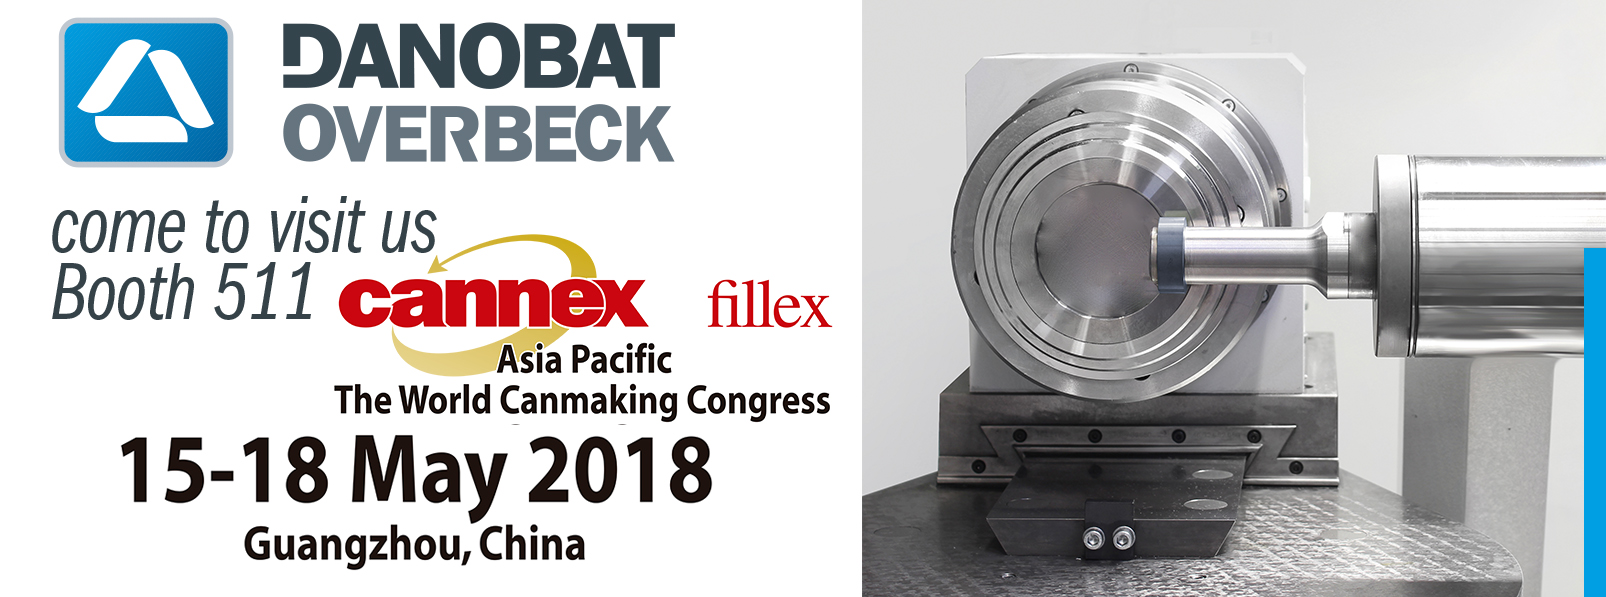 DANOBAT-OVERBECK HIGH PRECISION GRINDING MACHINES AT CANNEX 2018